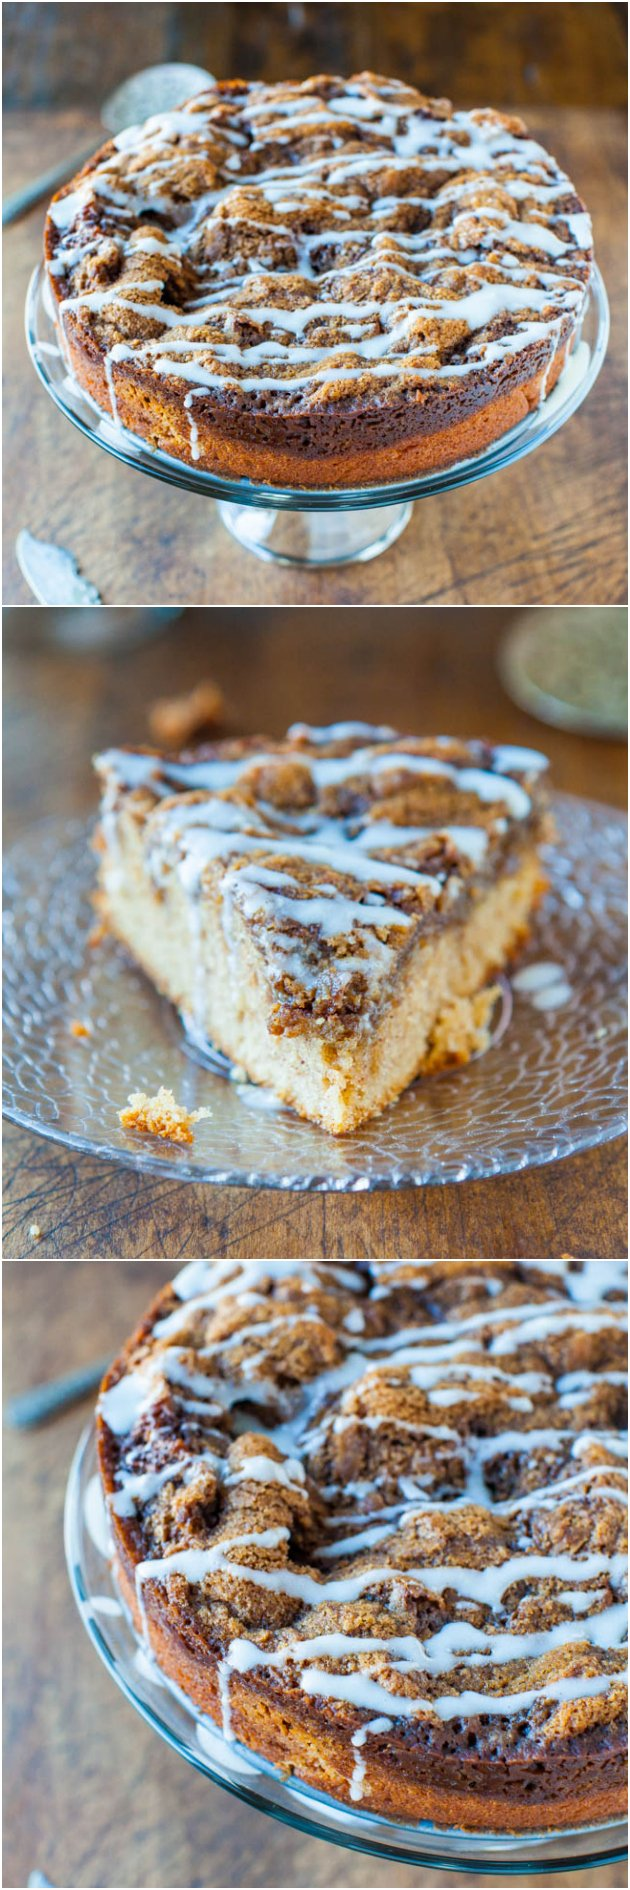 Glazed Cinnamon Roll Coffee Cake — A very fast and straightforward cinnamon coffee cake to make and isn't fussy at all. It's moist, dense, and way easier to make than actual cinnamon rolls!